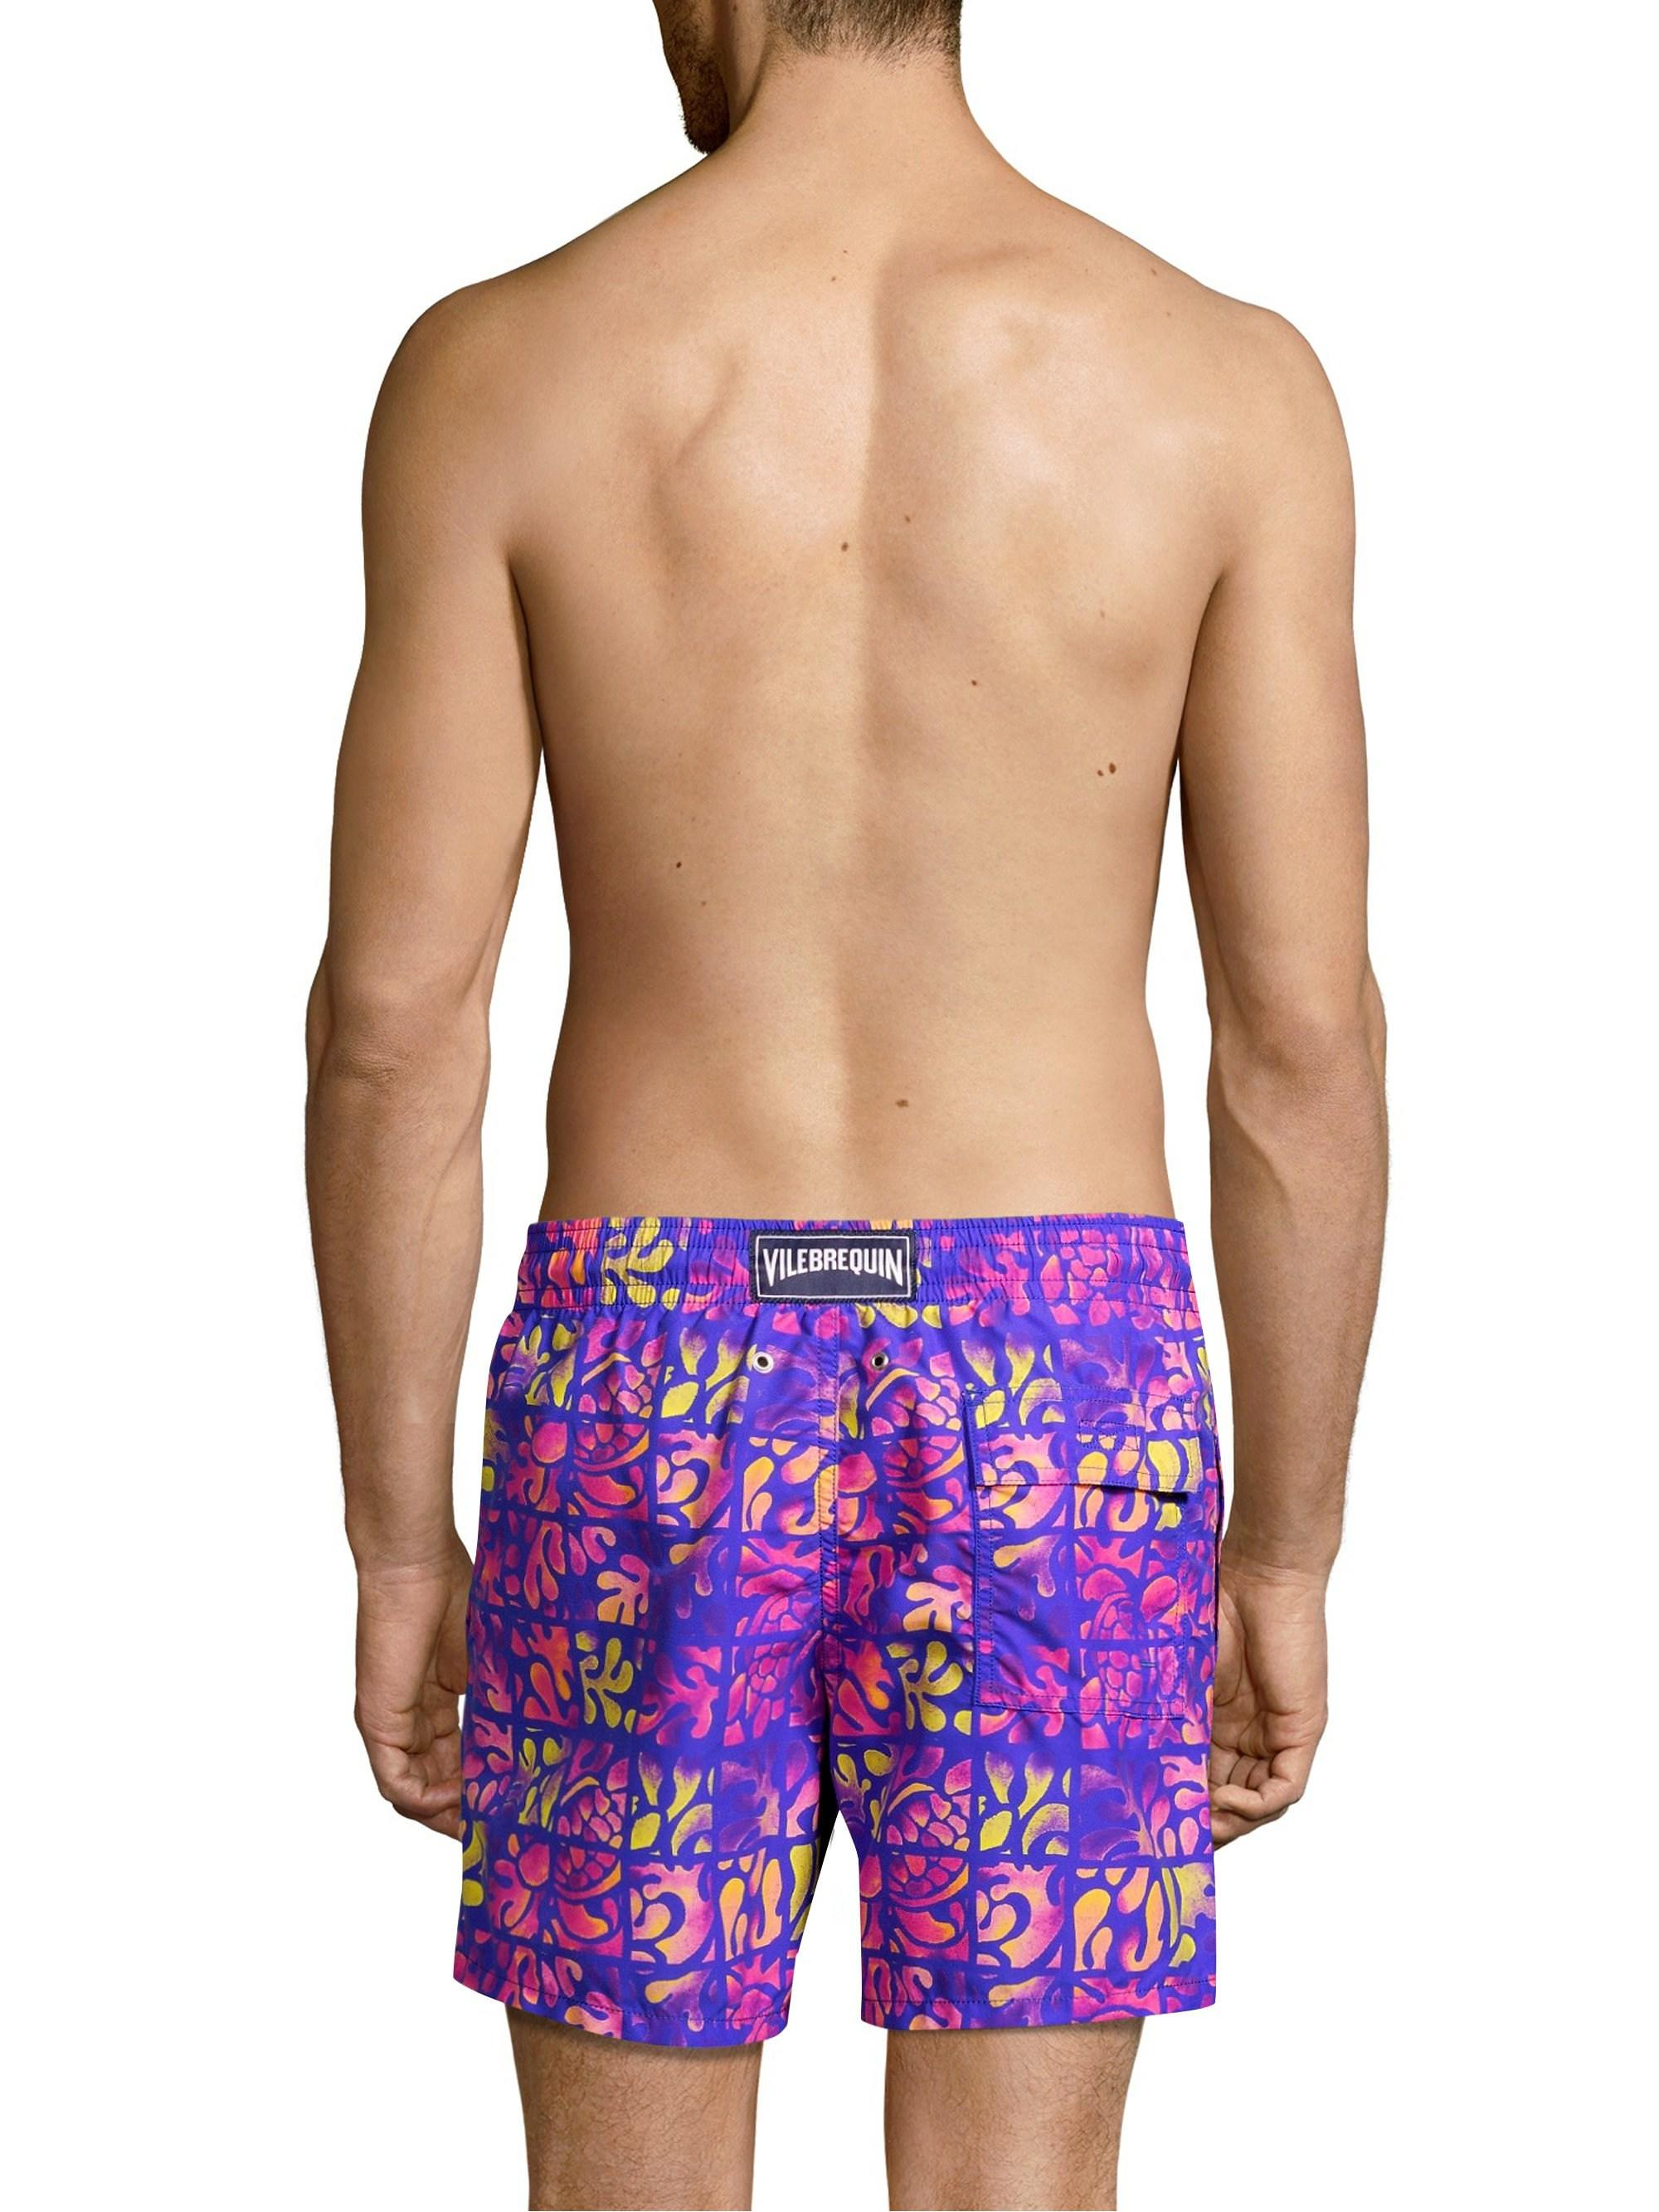 636cac90d0 Vilebrequin Men's Phuket Swim Trunks - Bleu De Mer - Size Medium in ...